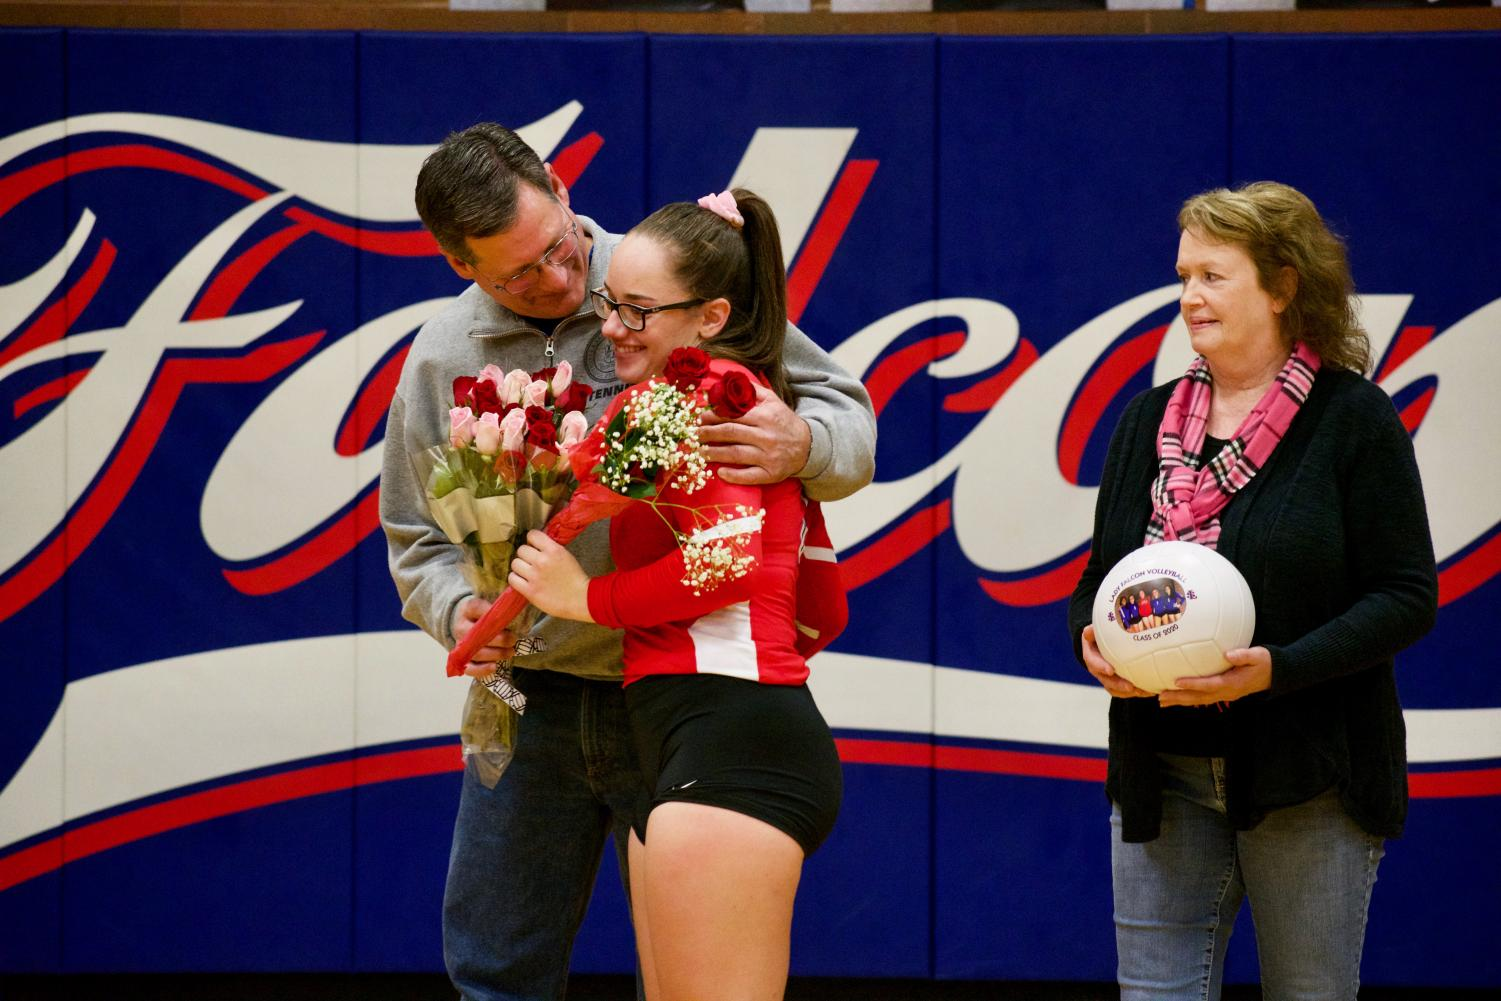 Ashley+Smith+is+recognized+at+senior+night+and+accompanied+by+her+parents.